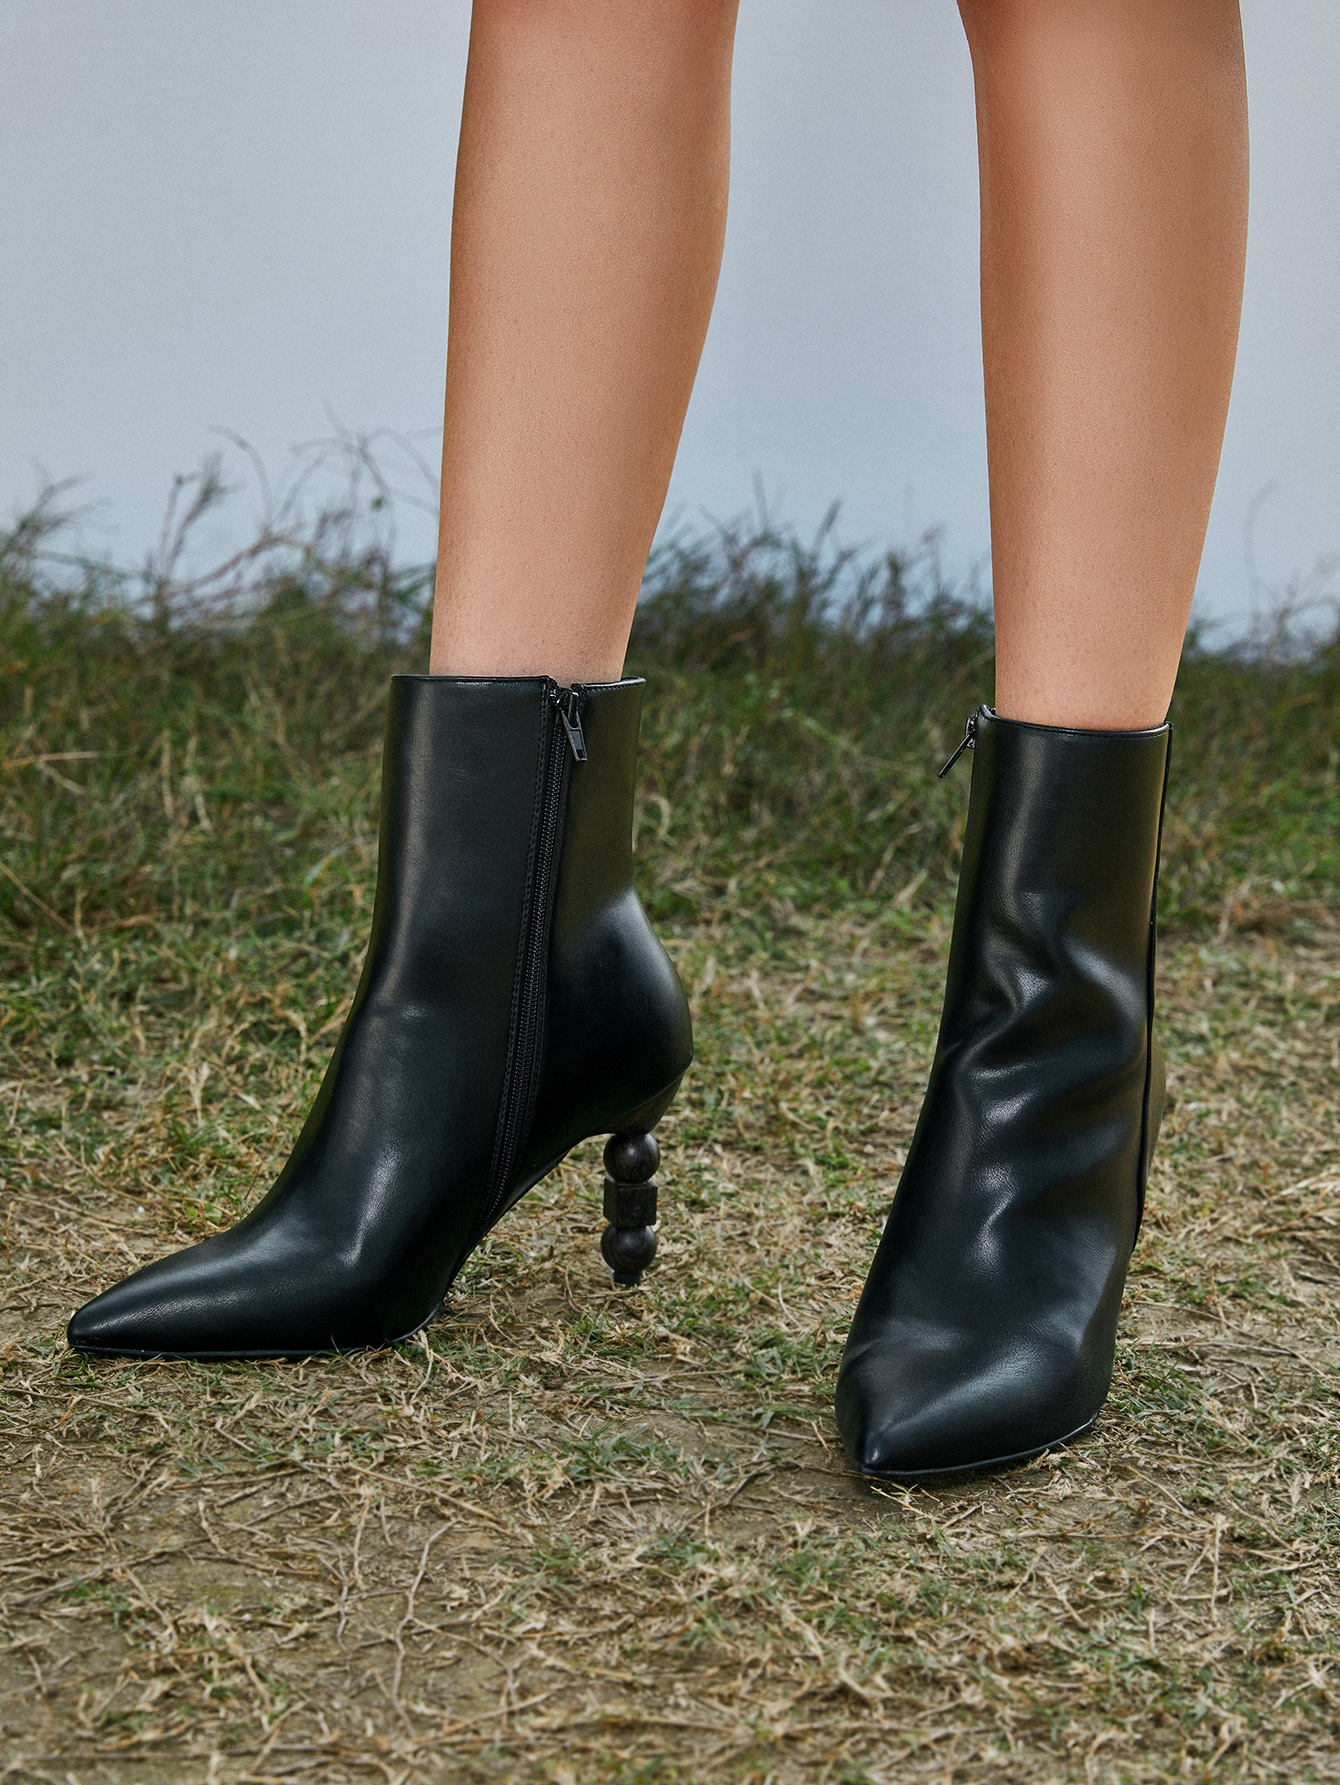 Point Toe Sculptural Heeled Boots